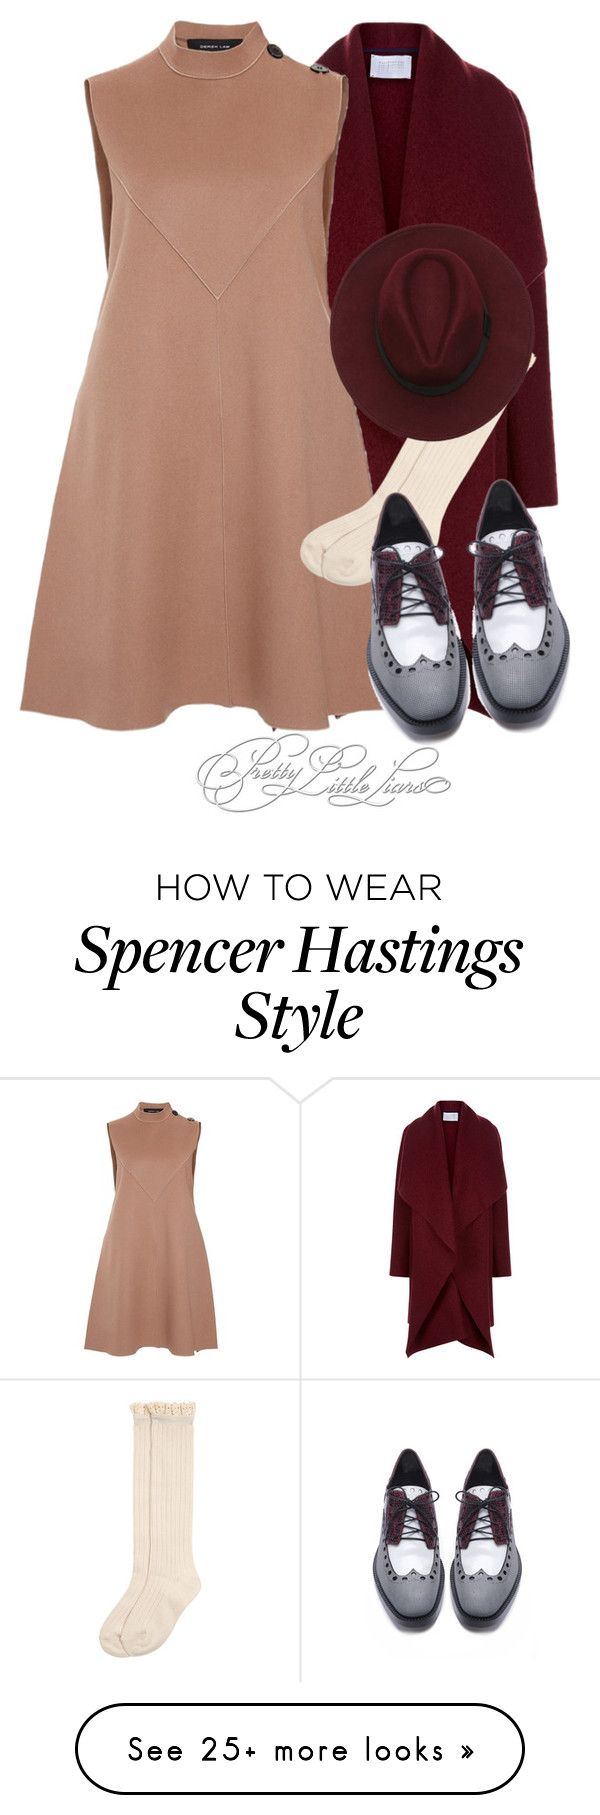 """""""Spencer Hastings inspired outfit"""" by vane-abreu on Polyvore featuring Harris Wharf London, Derek Lam, Monsoon and Alexander Wang"""